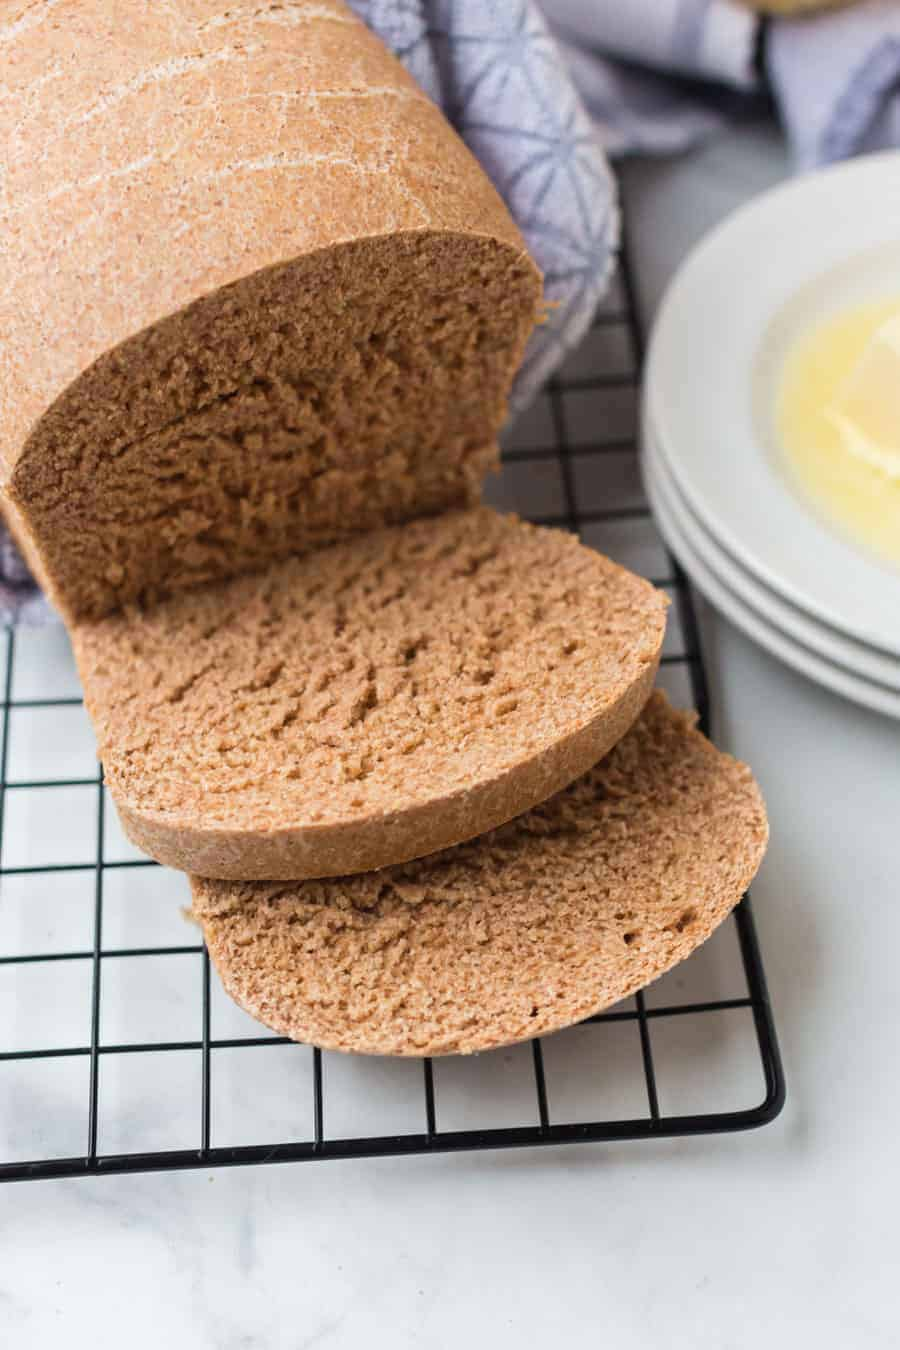 King Arthur classic 100% whole wheat bread is the perfect loaf for all the favorite sandwiches and toast varietals that you and your family love! Don't fret if you've made bread that hasn't worked out in the past... This loaf is so simple to make that you'll be sharing the recipe (and slices) with all your loved ones! #homemadebread #wholewheatbread #wholewheatbreadrecipe #breadrecipe #kingarthurflour #wheatbread #bread #baking